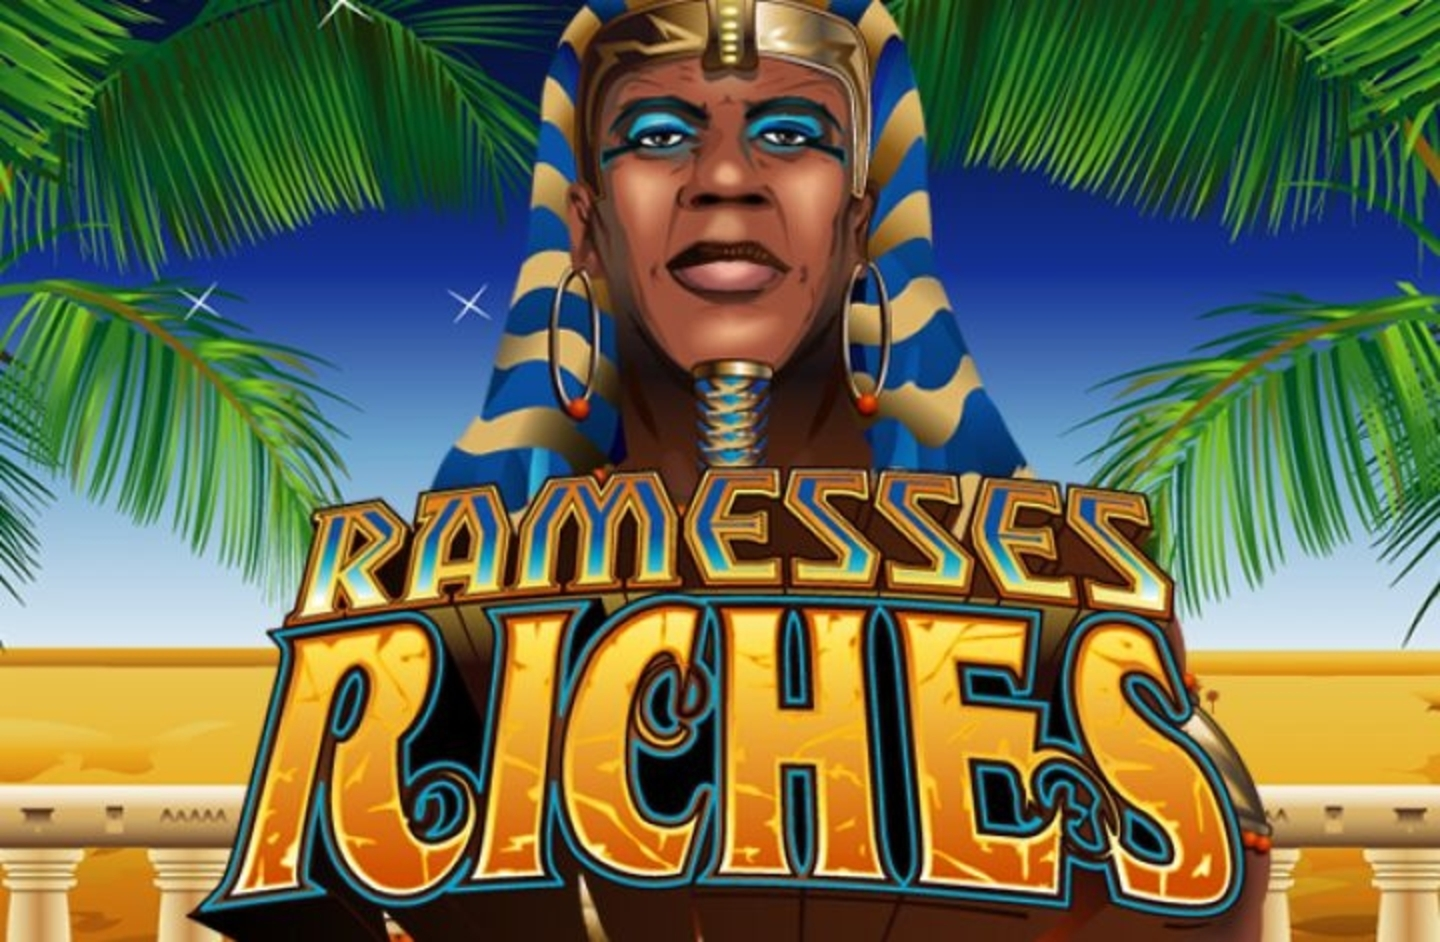 Ramesses Riches Online Slot Demo Game by NextGen Gaming